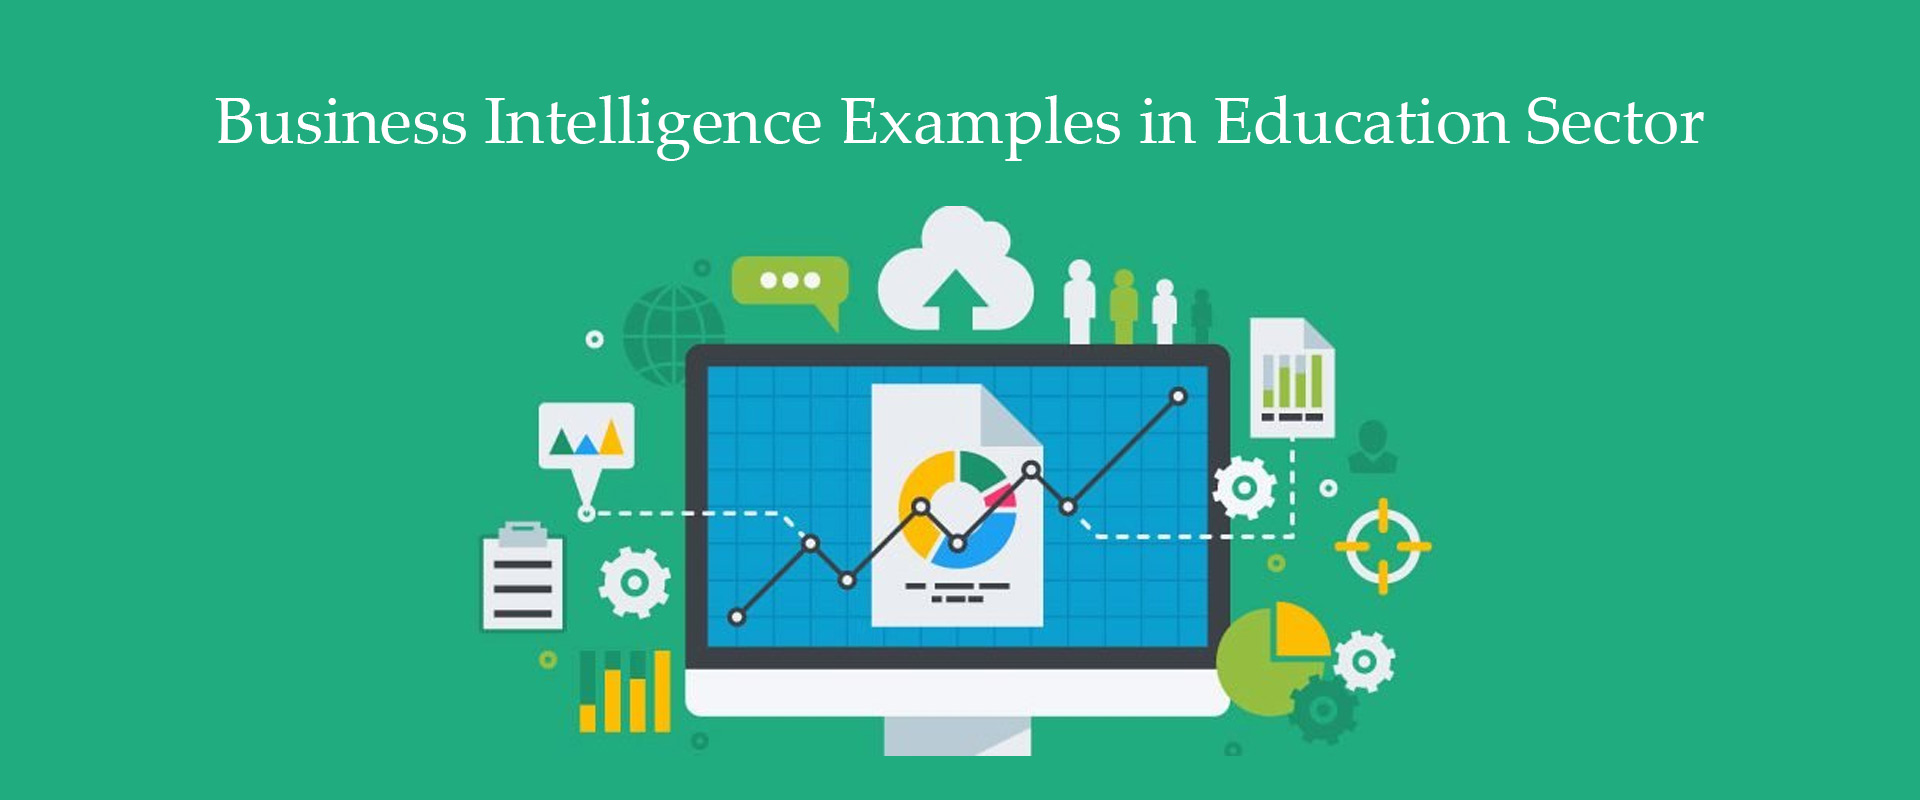 Business Intelligence Examples in Education Sector